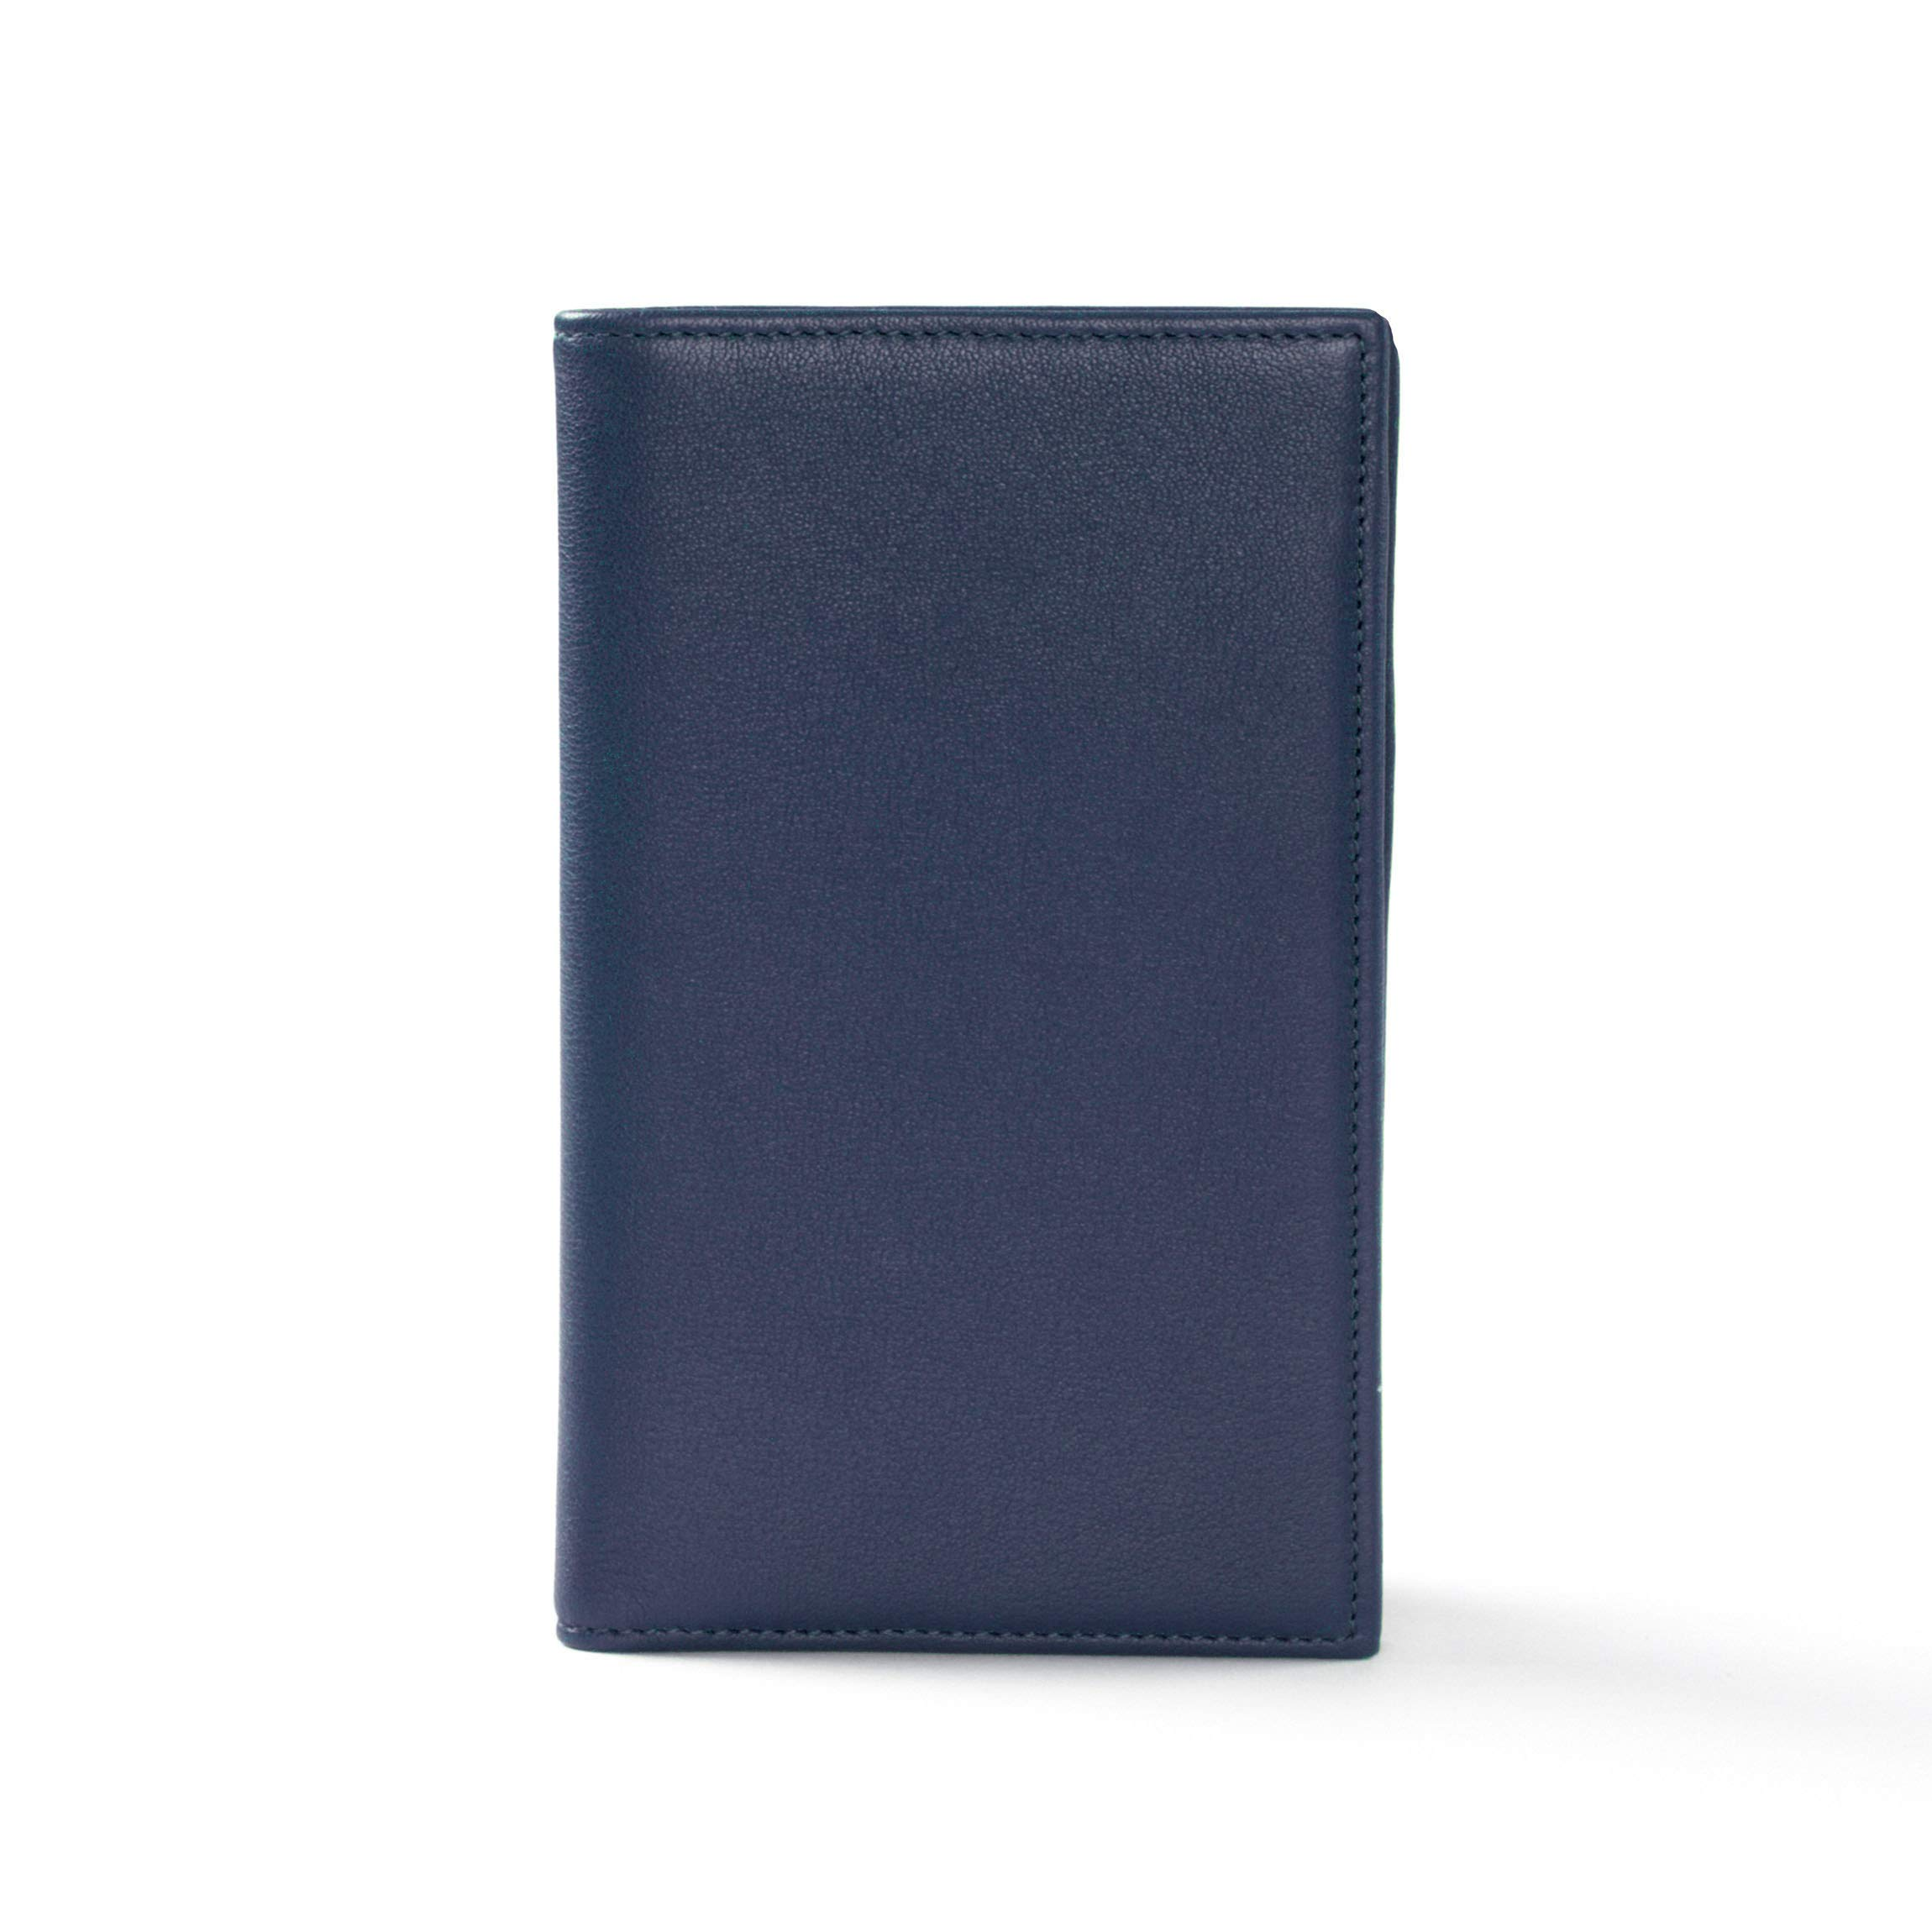 Business Card Organizer - Full Grain Leather - Navy (Blue)